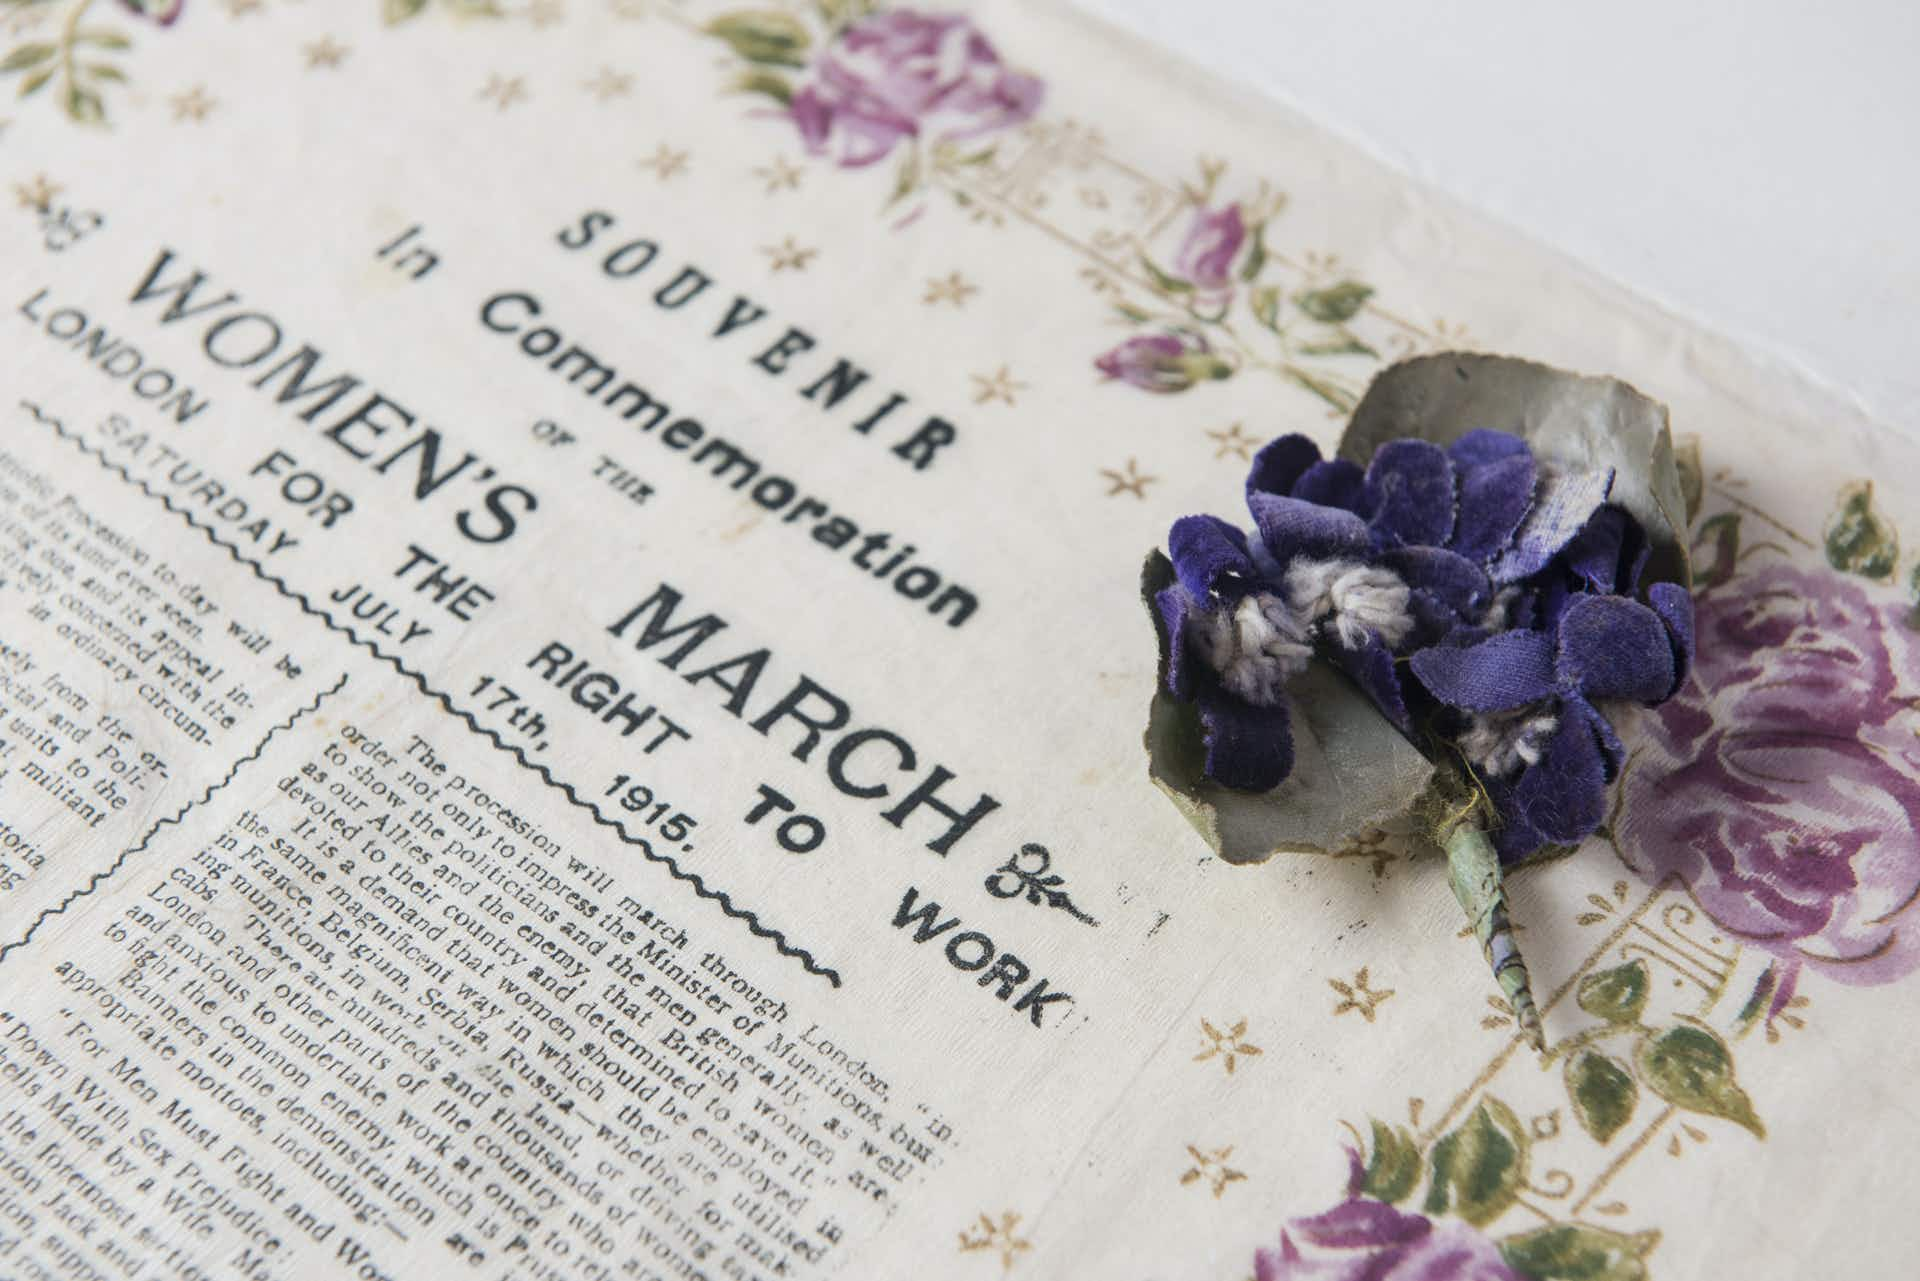 England is honouring the Suffragettes with a year-long celebration of women